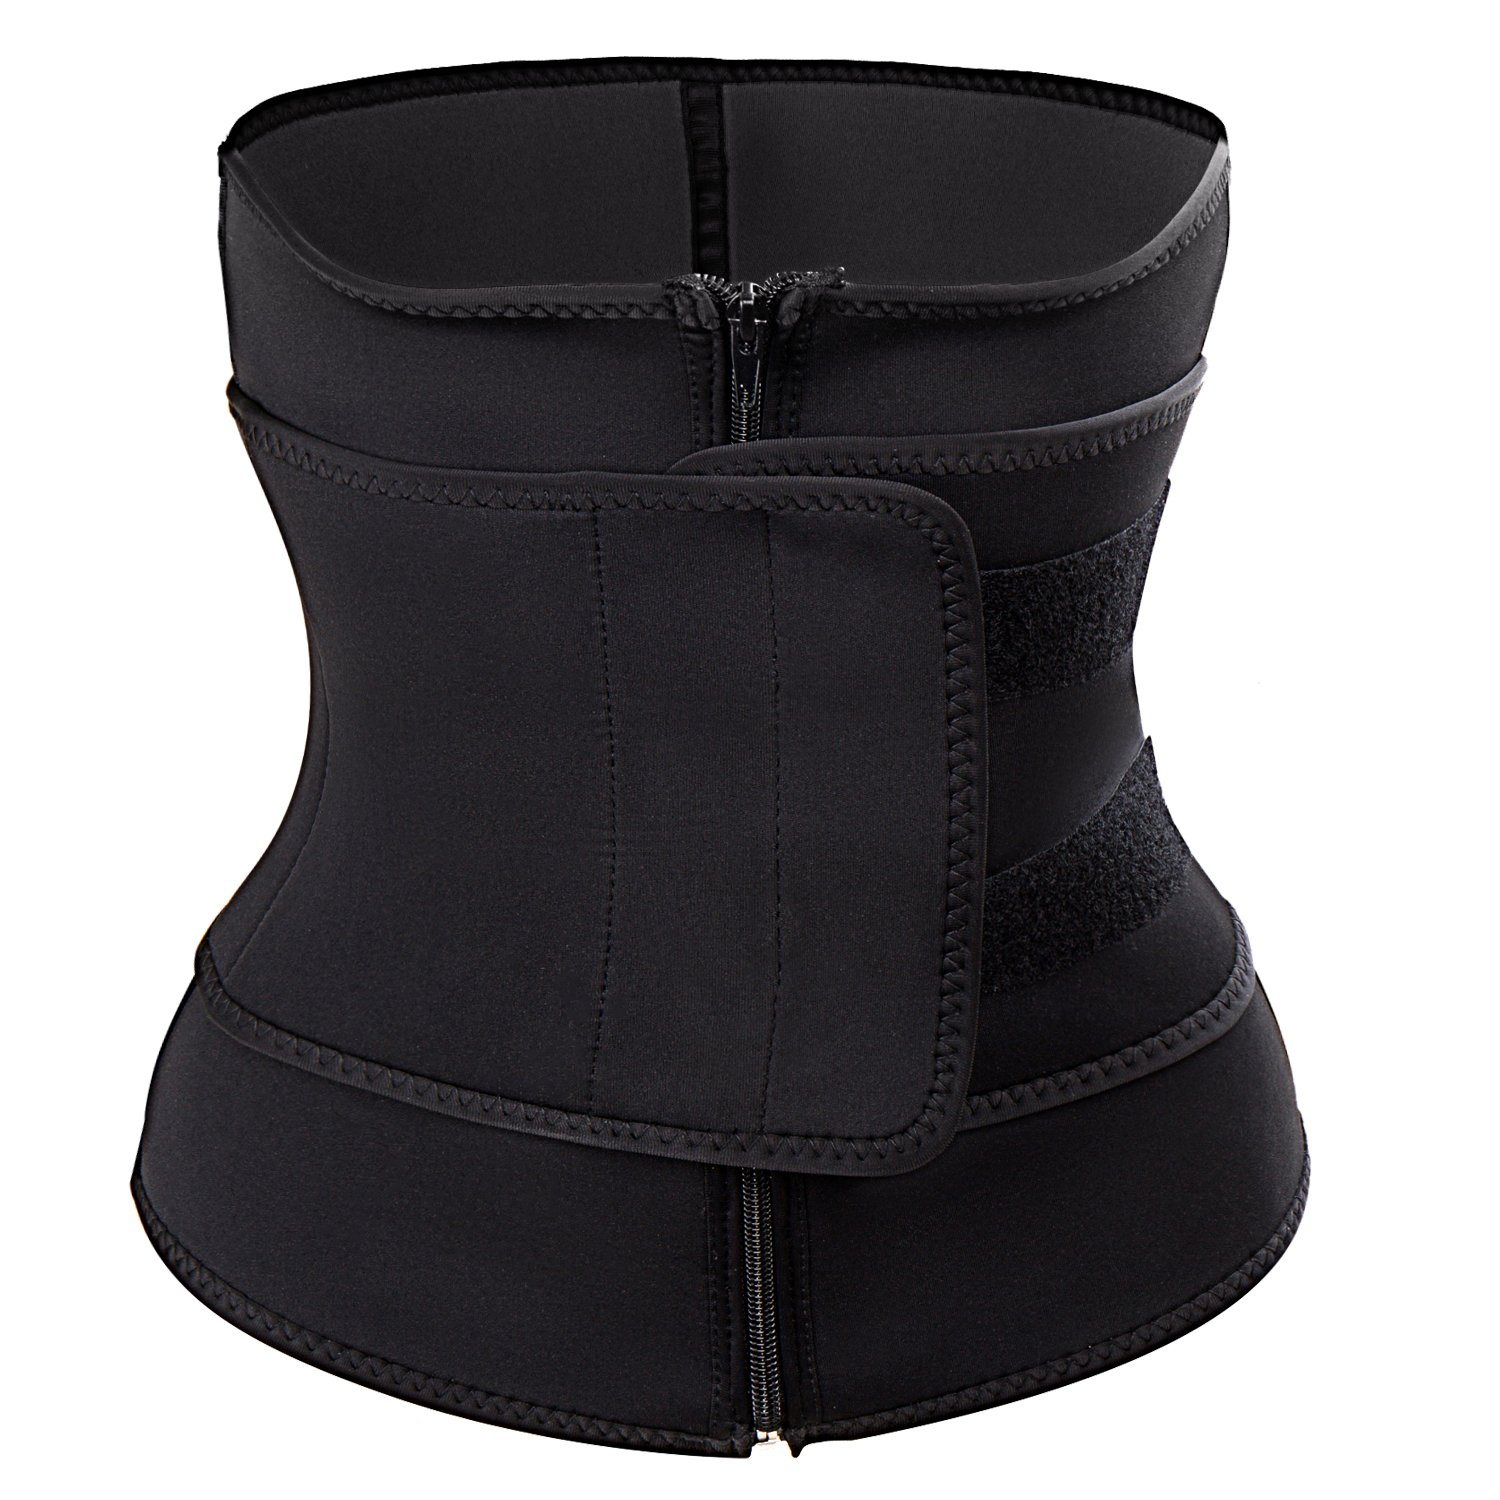 03a646bfe2a KIWI RATA Abdominal Belt High Compression Zipper Neoprene Waist Trainer  Cincher Corset Body Fajas Sweat at Amazon Women s Clothing store